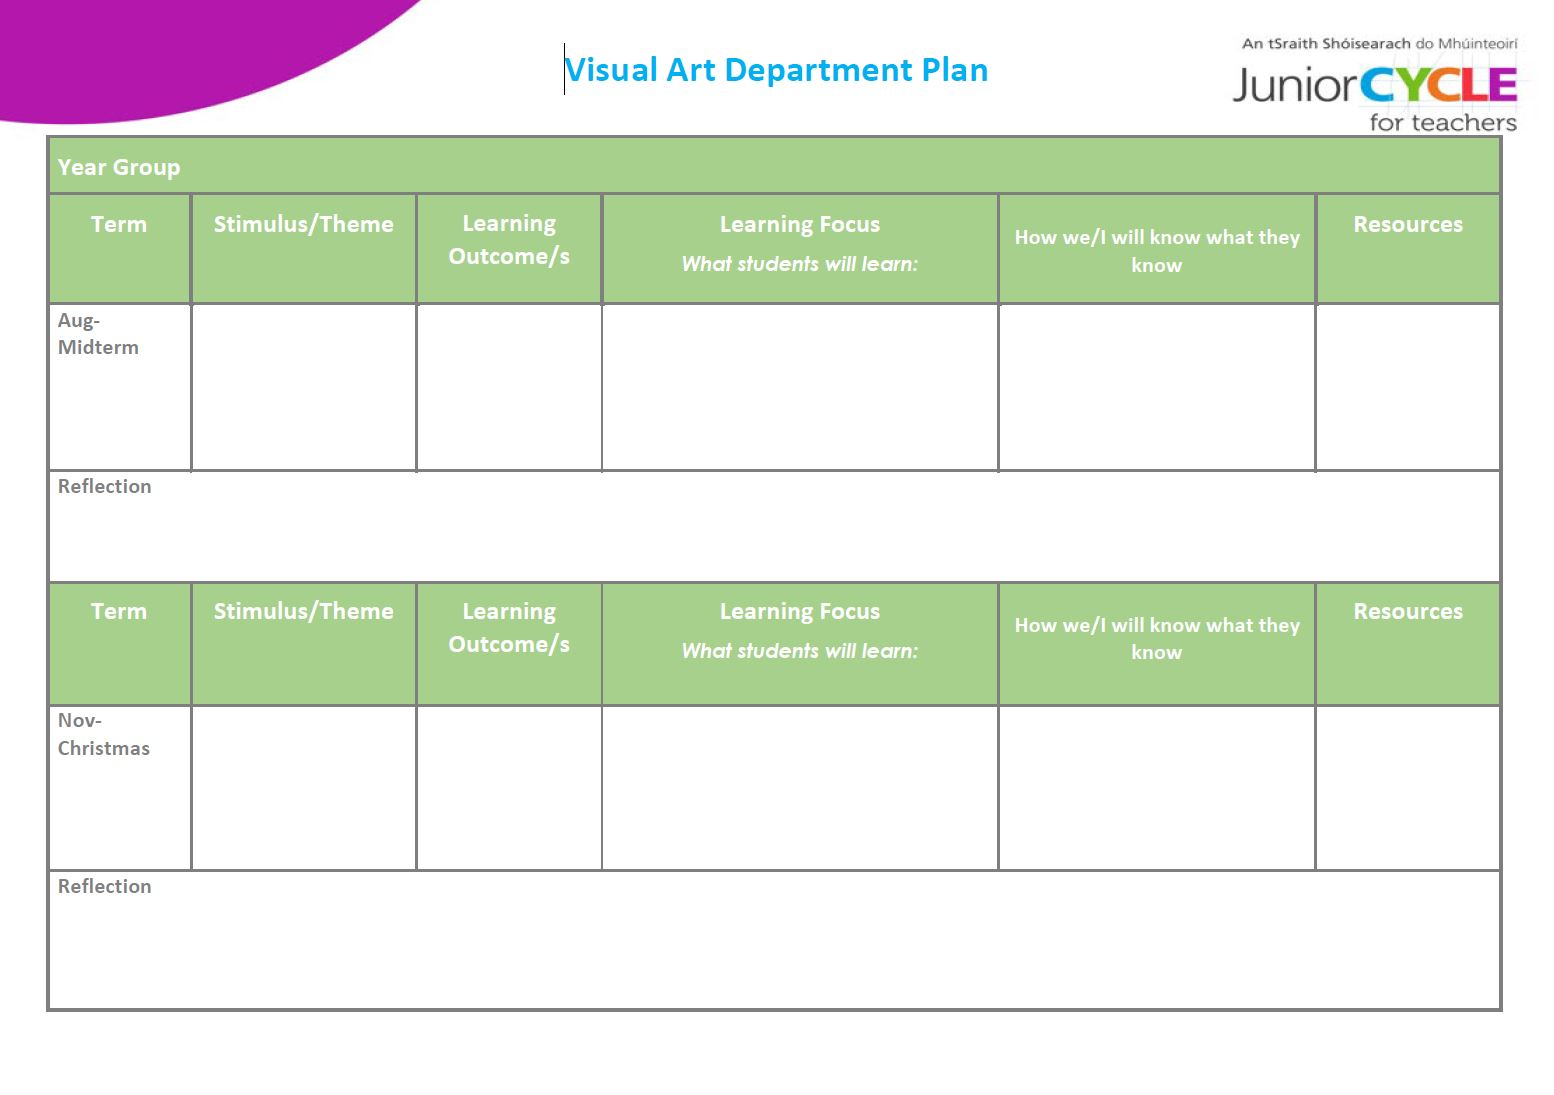 Visual Art Department Plan